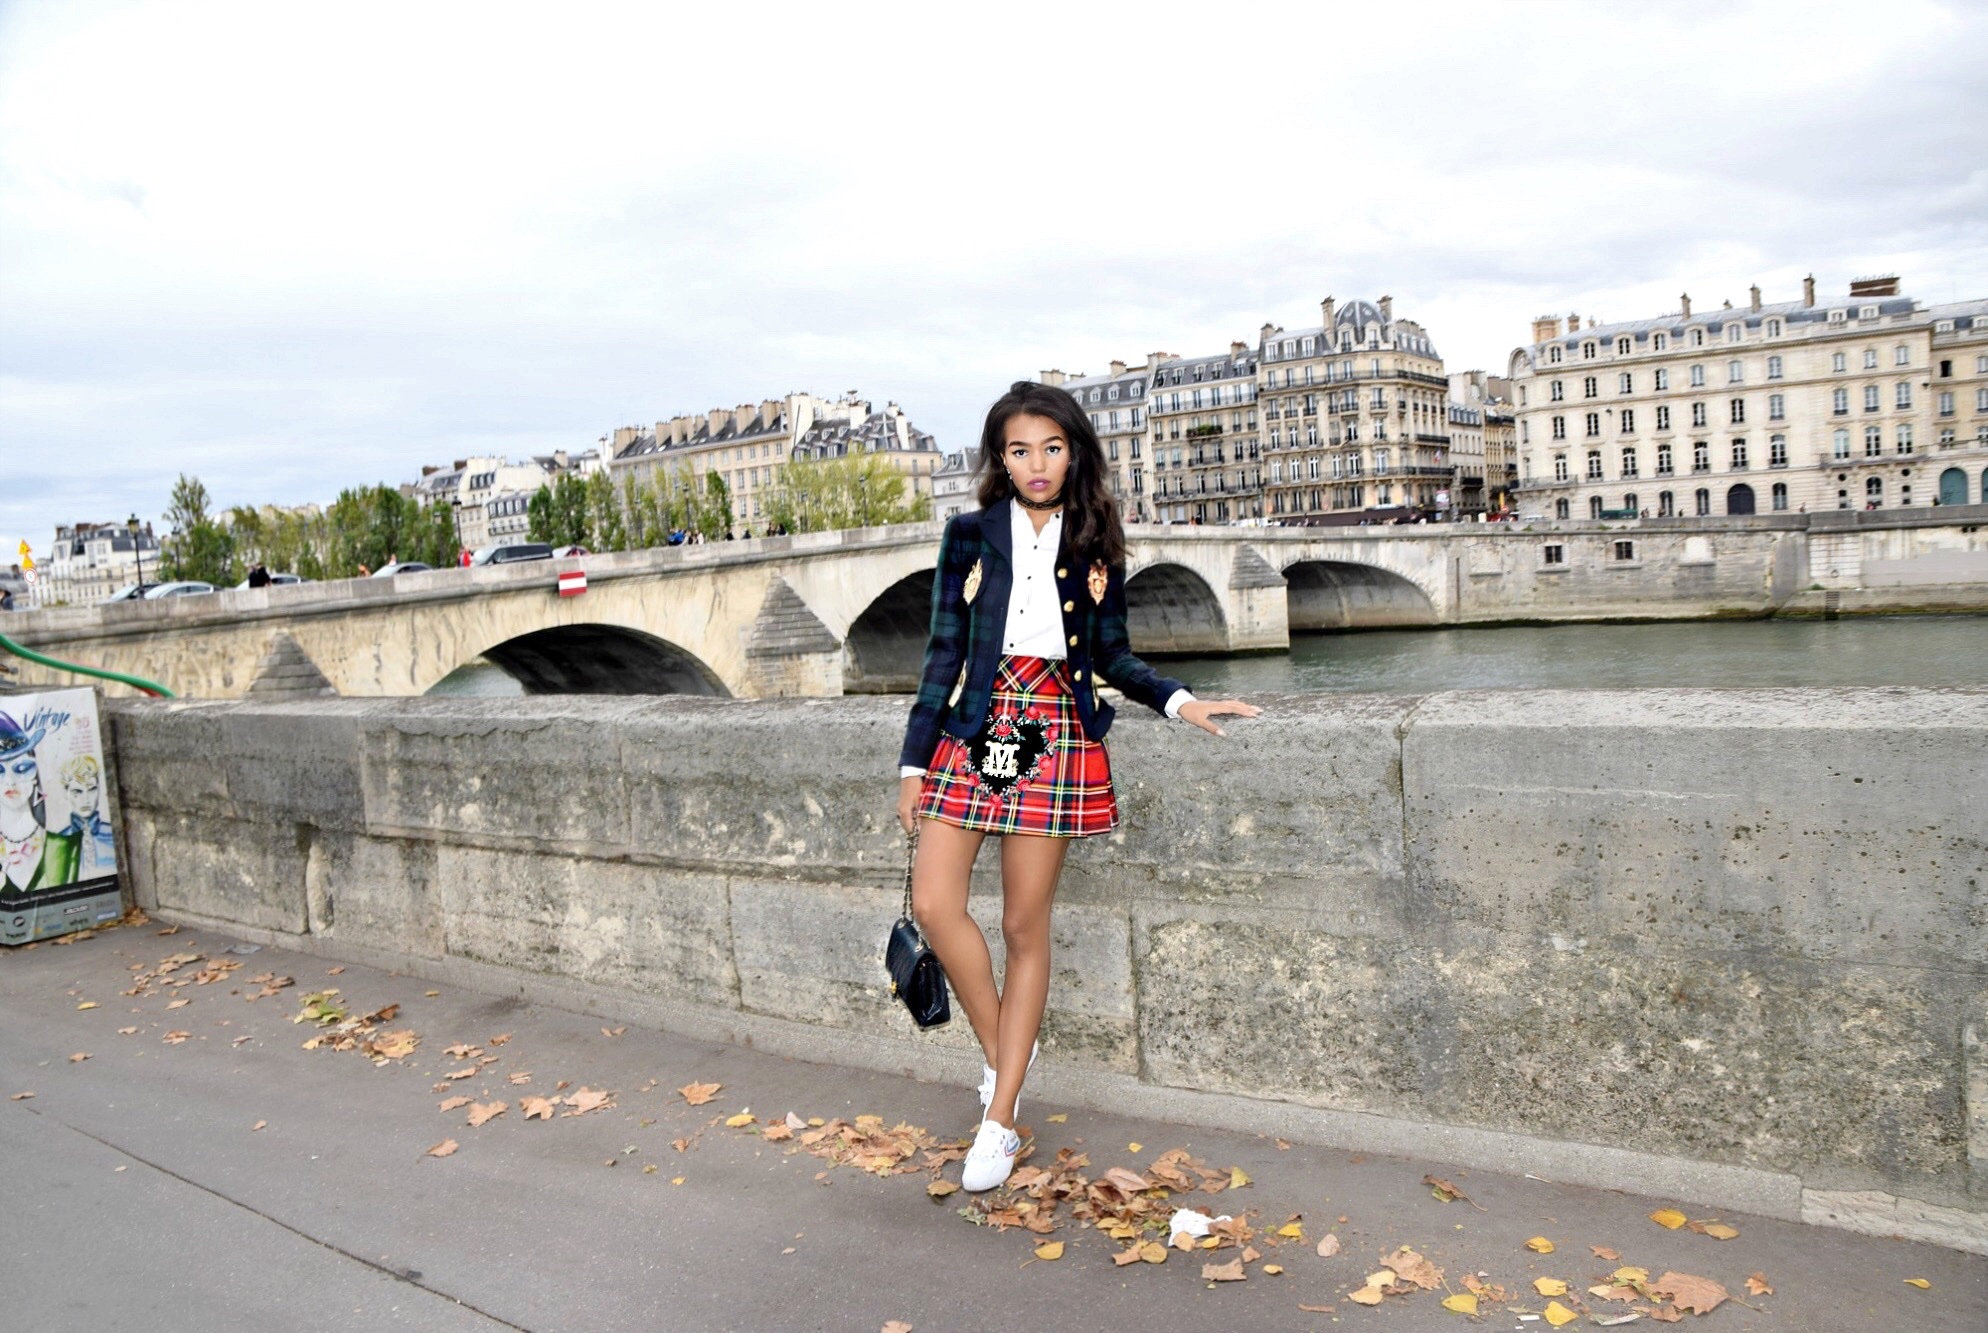 Moschino A/W 13 // Paris Travel Diary // Moschino Plaid Blazer Jacket & Pleated Skirt // Frame White Blouse // Feiyue Sneakers // Chanel Classic Flap Bag & CC Earrings // Los Angeles Fashion Blogger Daphne Blunt: To Style, With Love